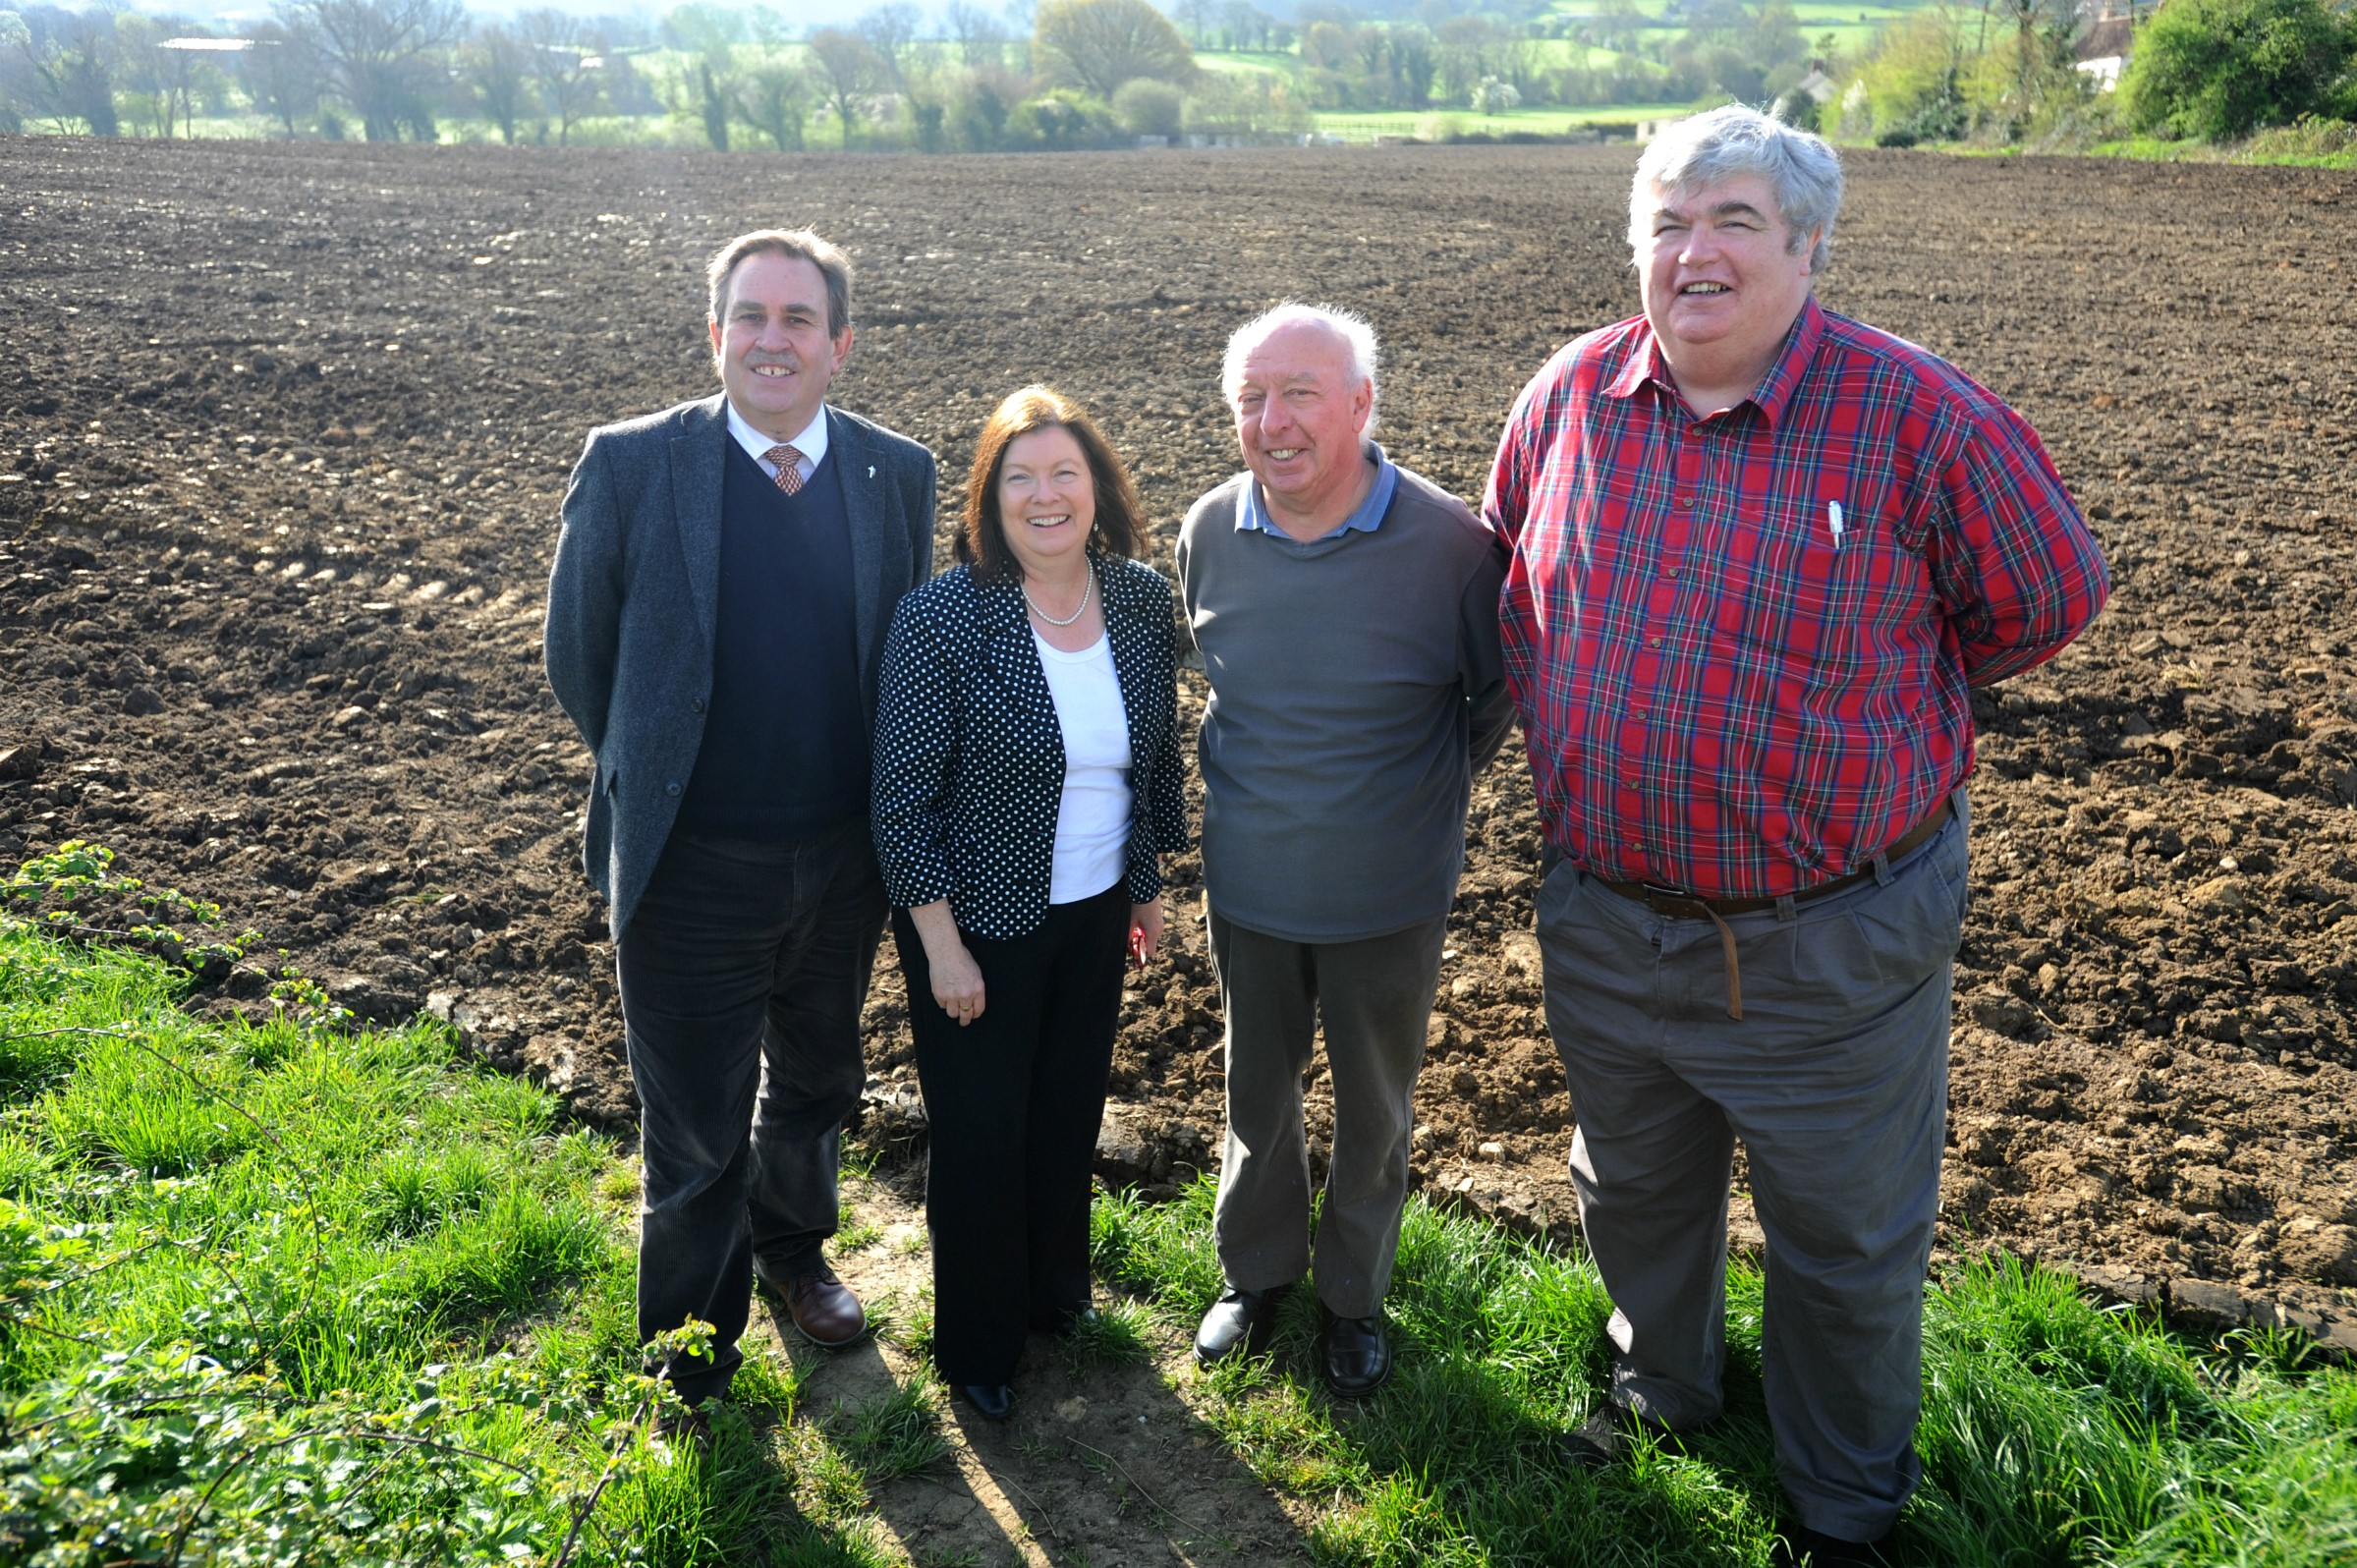 Shadow Minister for Communities and Local Government Roberta Blackman-Woods visits Mankley Field with Labour parliamentary candidate for Stroud David Drew (left), local resident Dave Camm and district cllr Steve Lydon, who represents the Stanleys